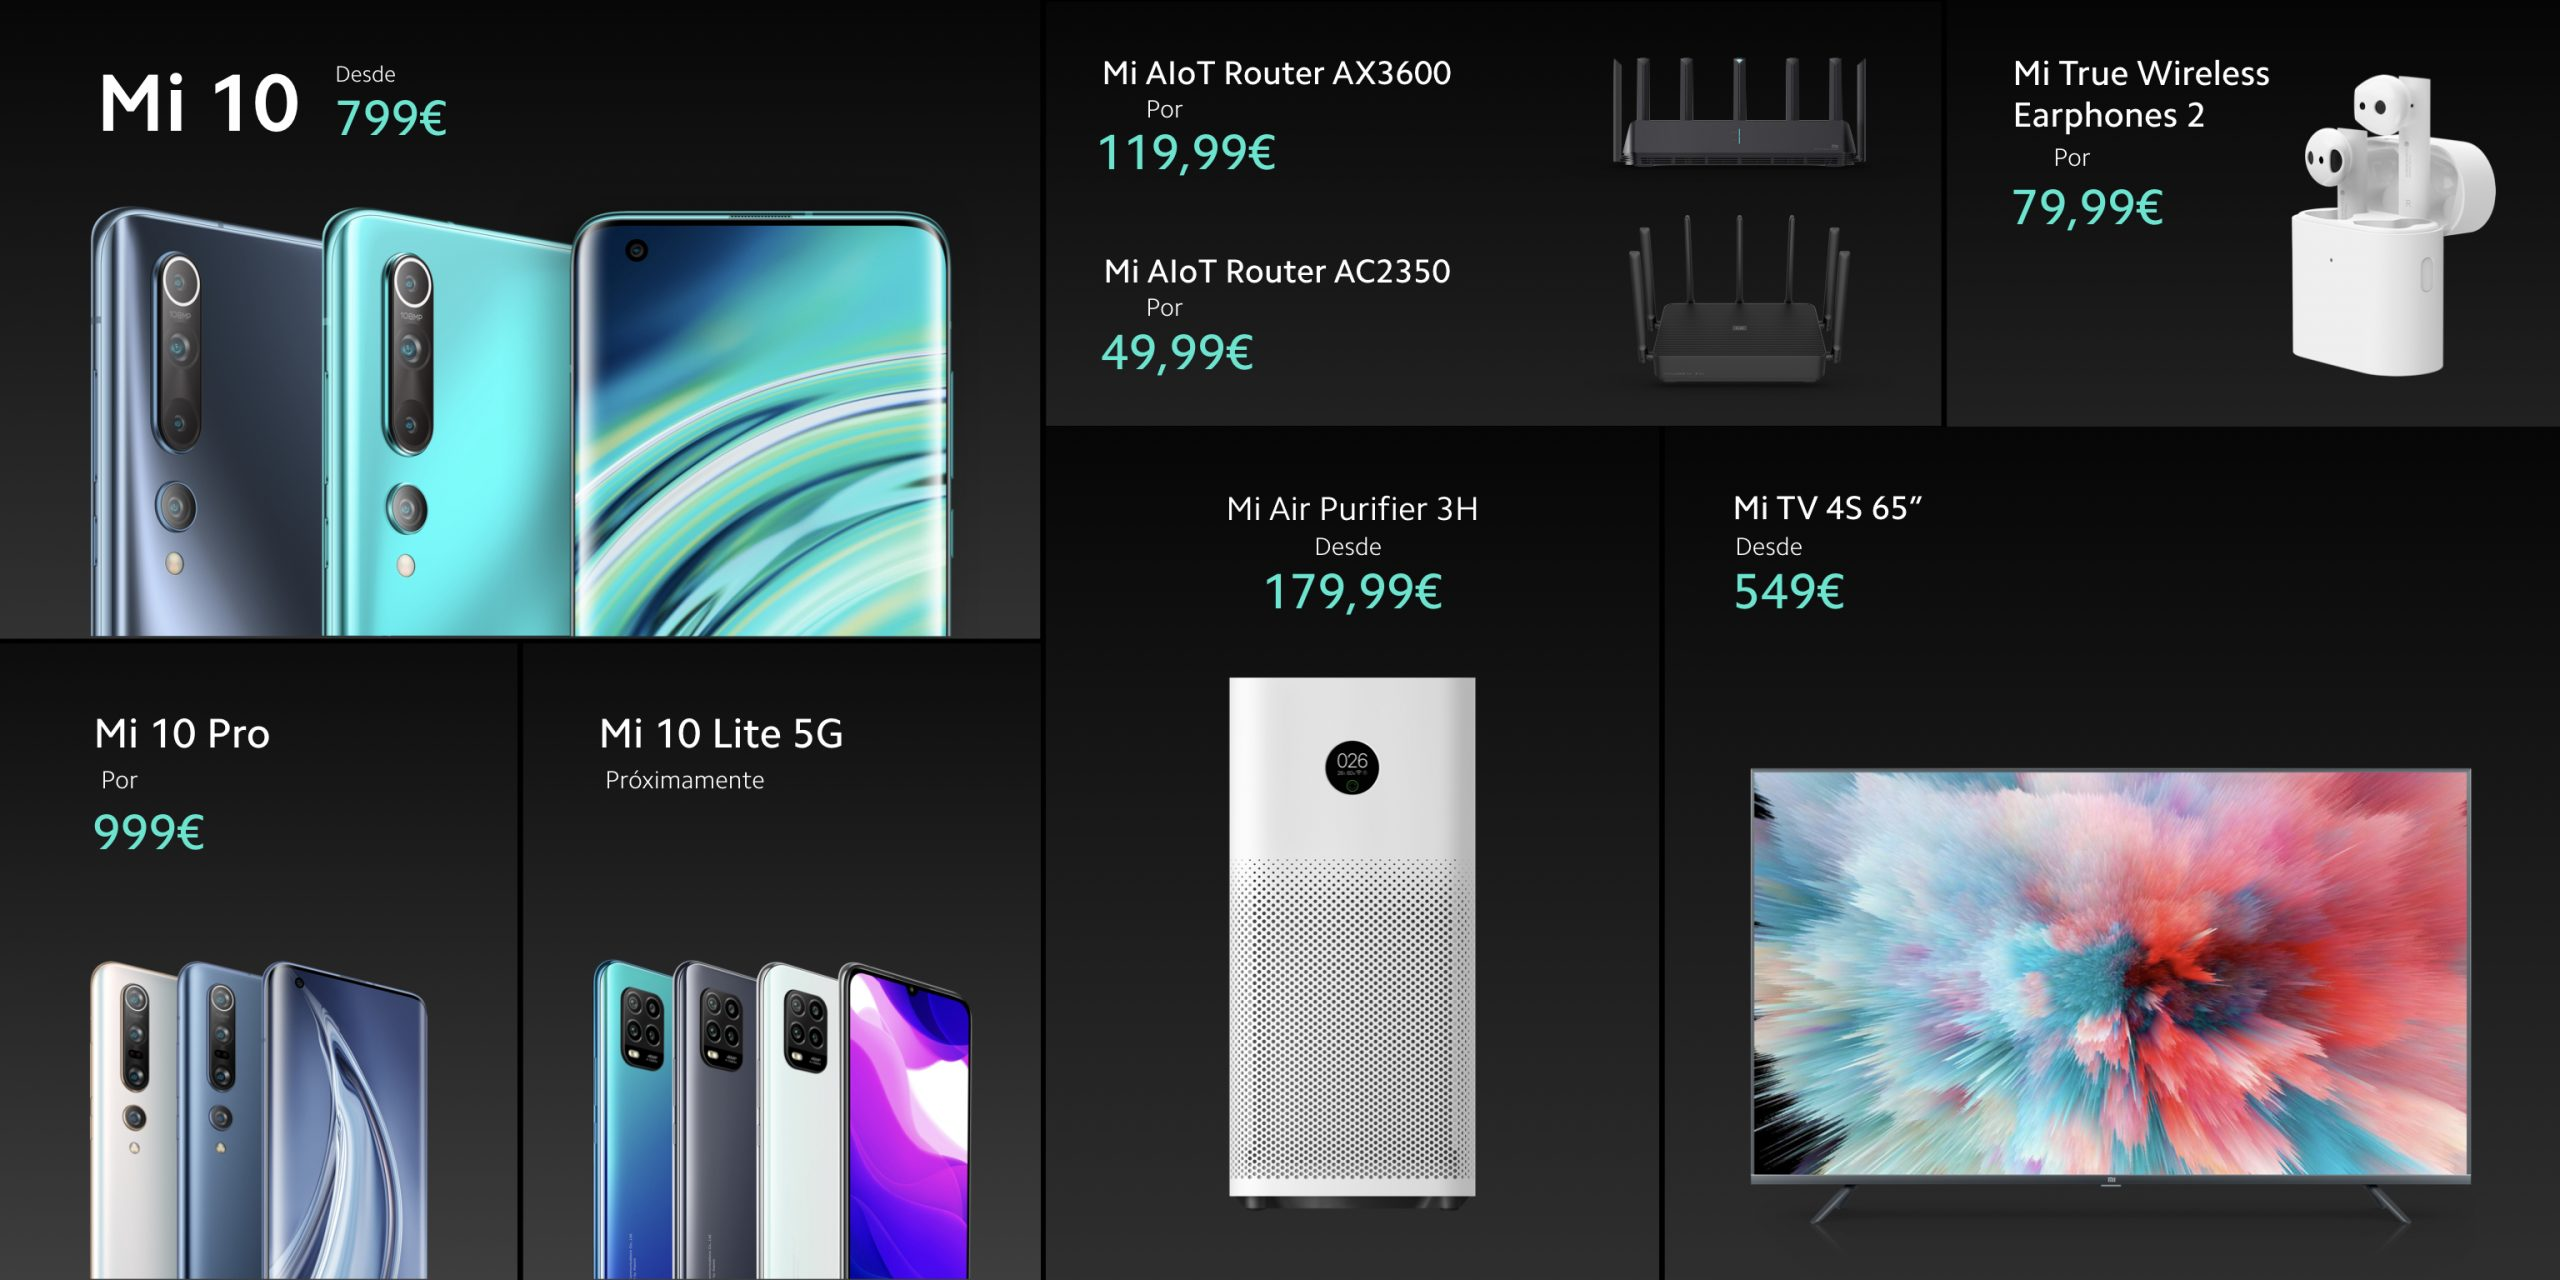 The Xiaomi Mi True Wireless 2, the Mi AIoT Router AX3600 and other gadgets arrive in Spain. Xiaomi Addicts News